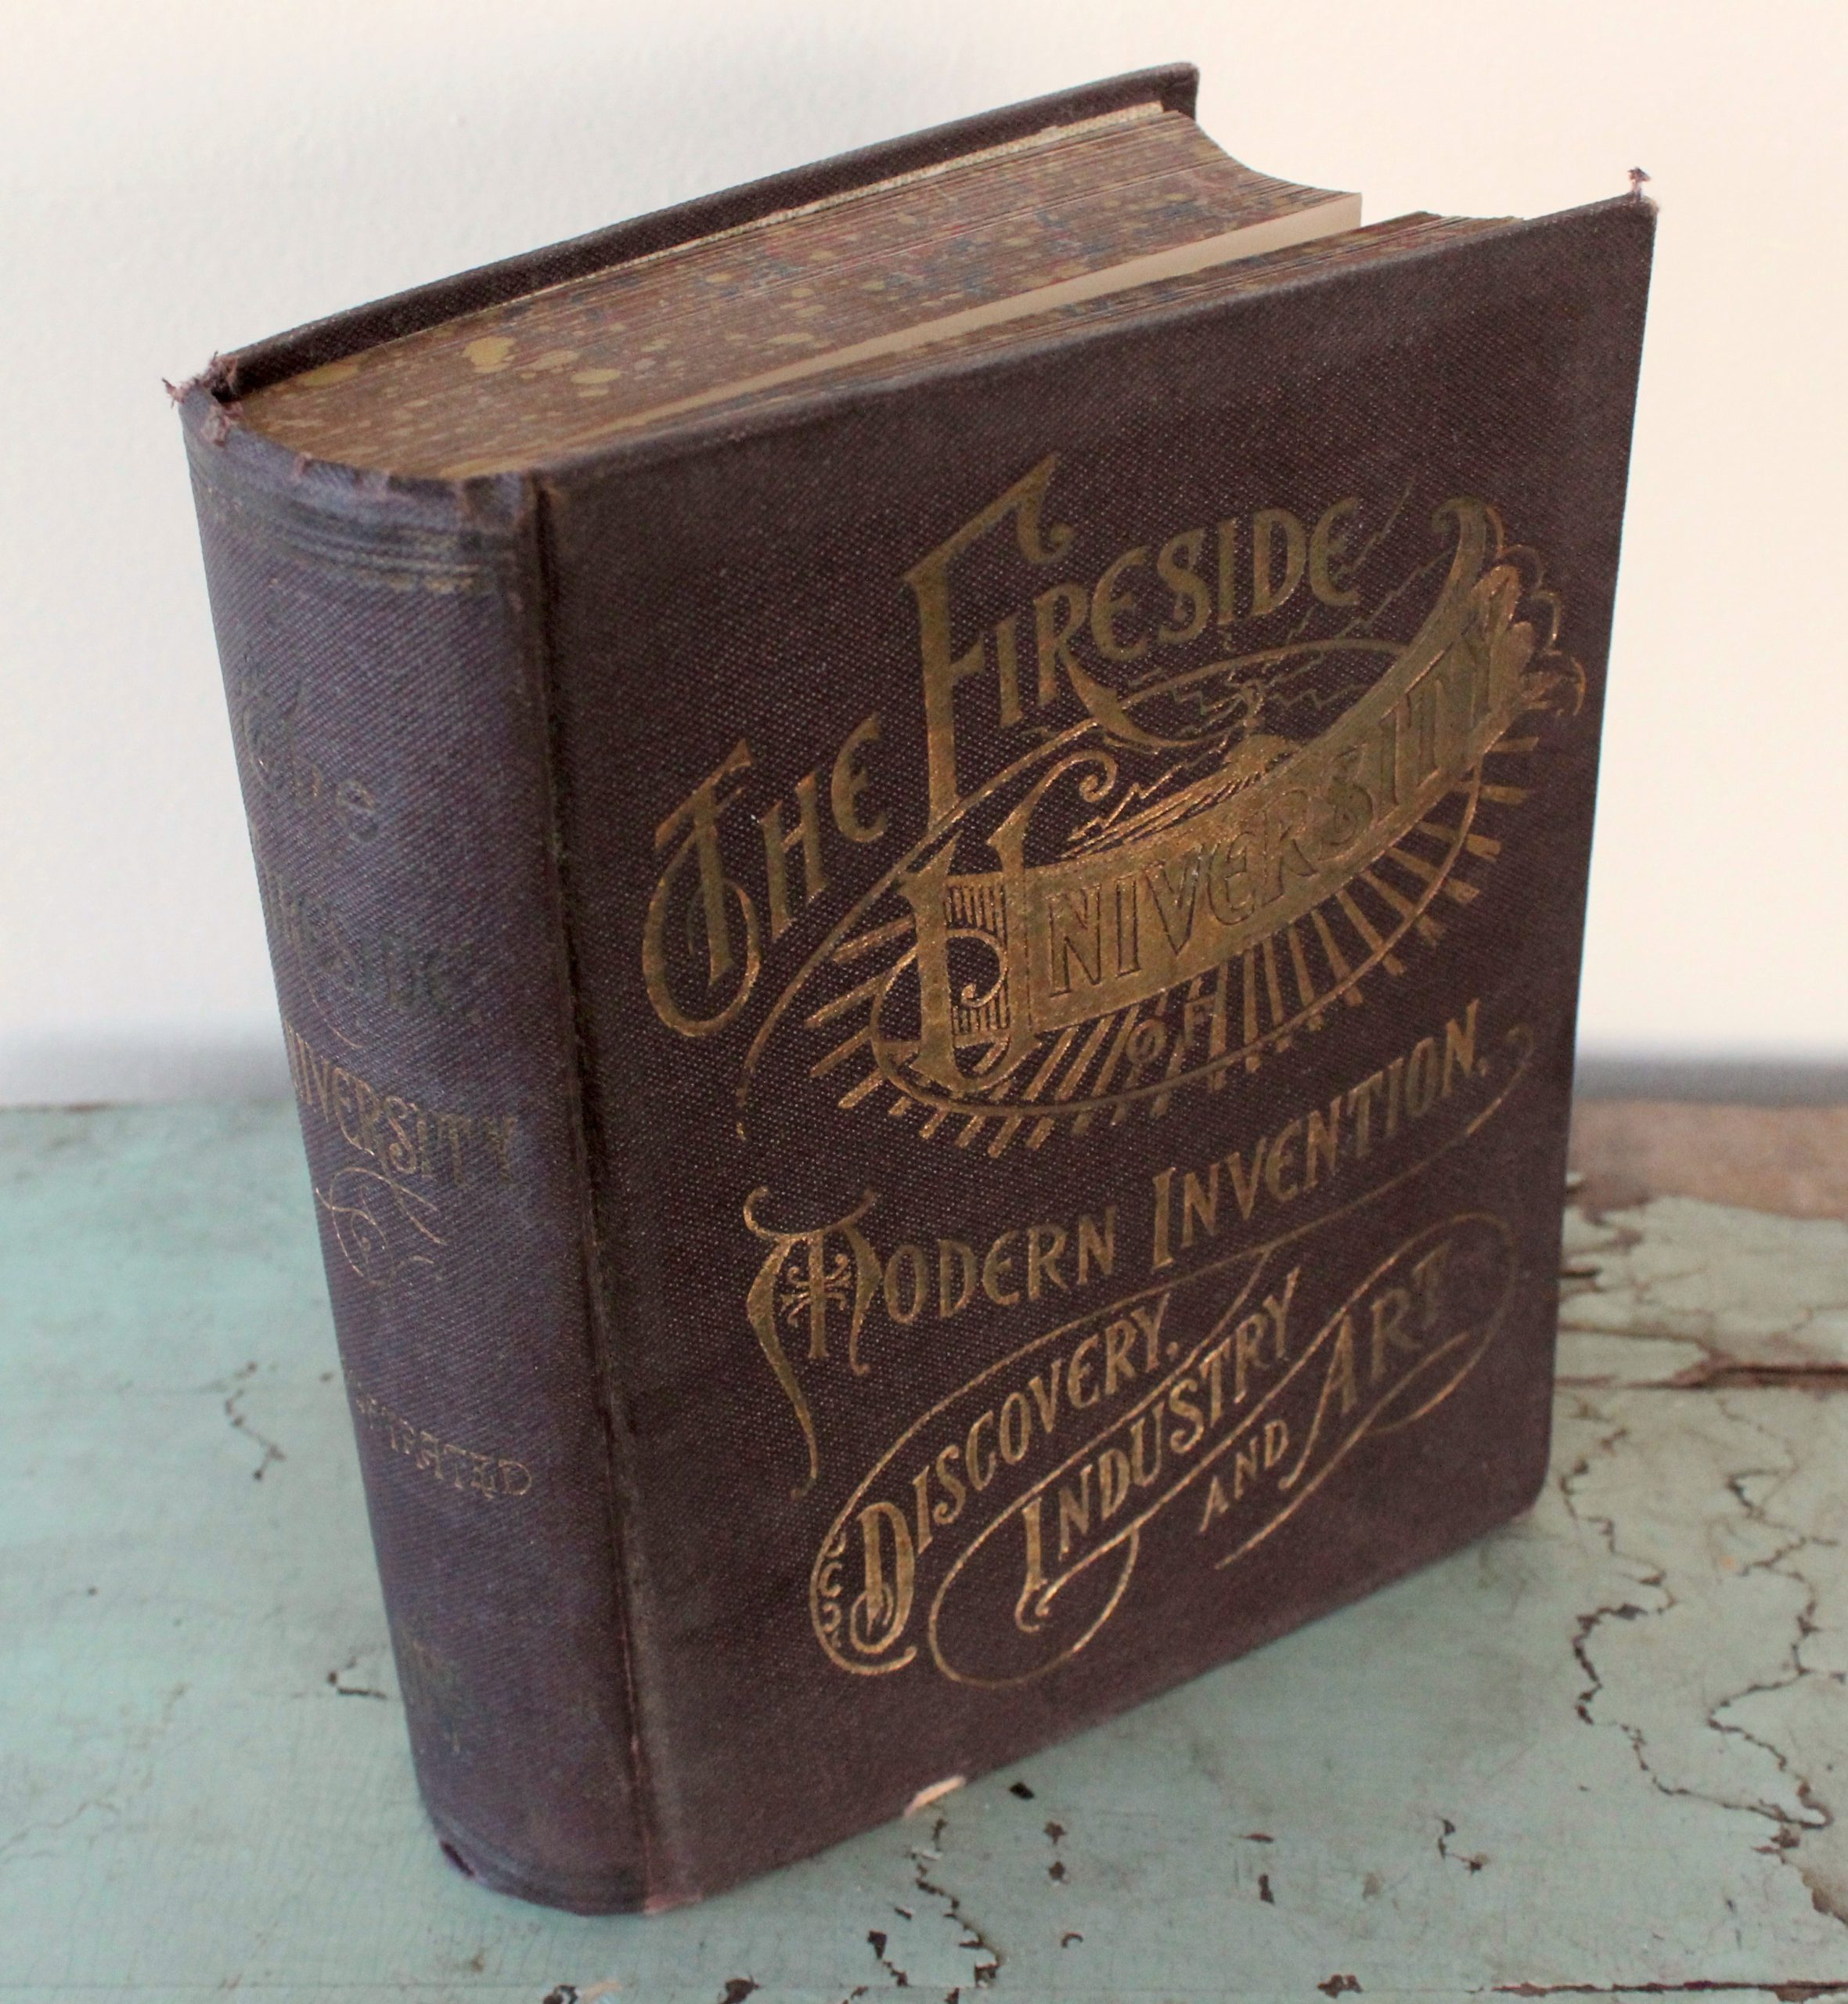 The Fireside University - Union Publishing